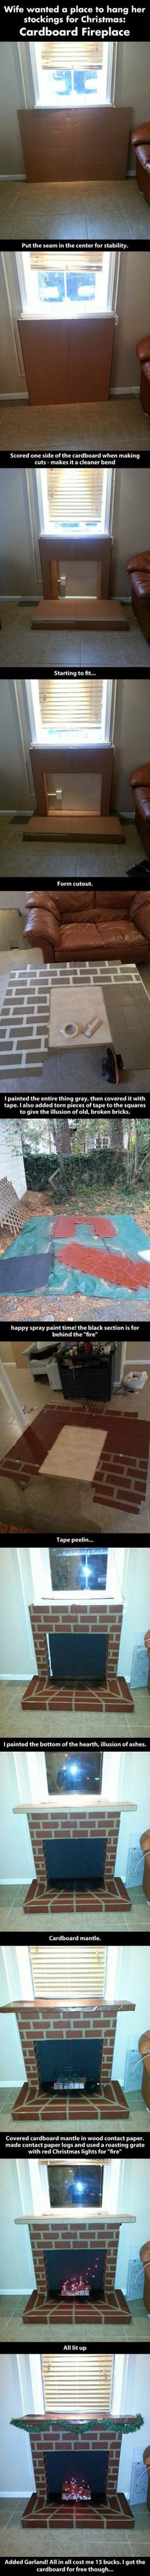 Craft and DIY Ideas 008